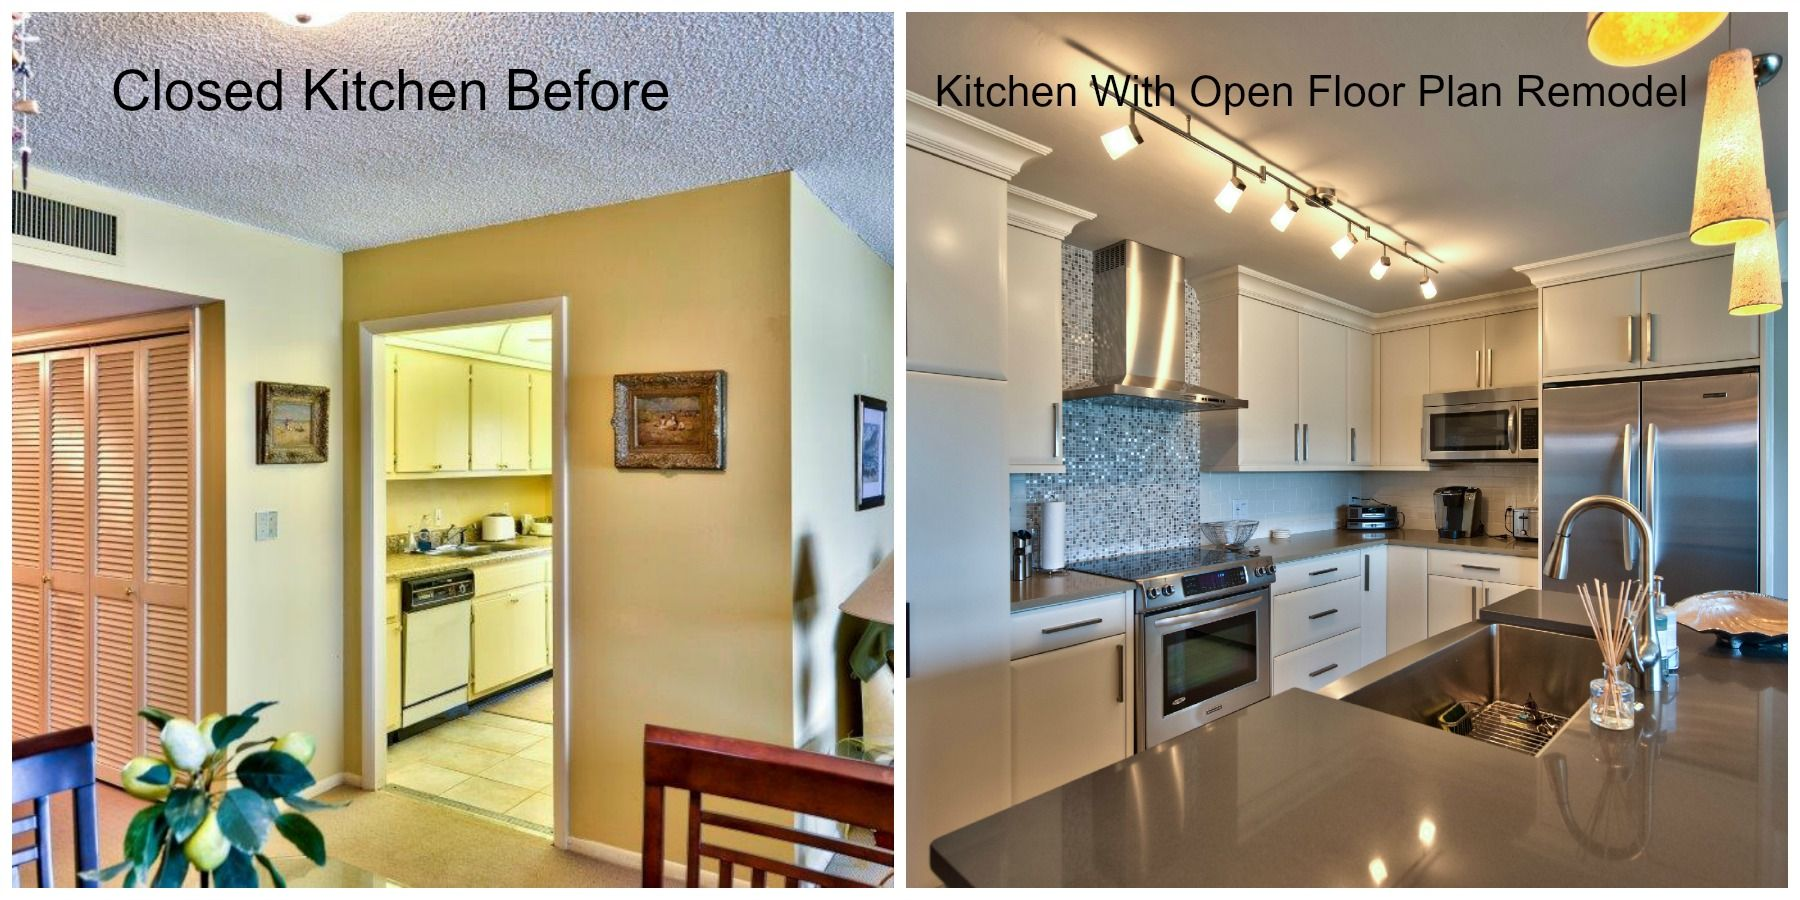 Before And After Of This Beautiful Open Concept Kitchen: Kitchen Before And After Photos